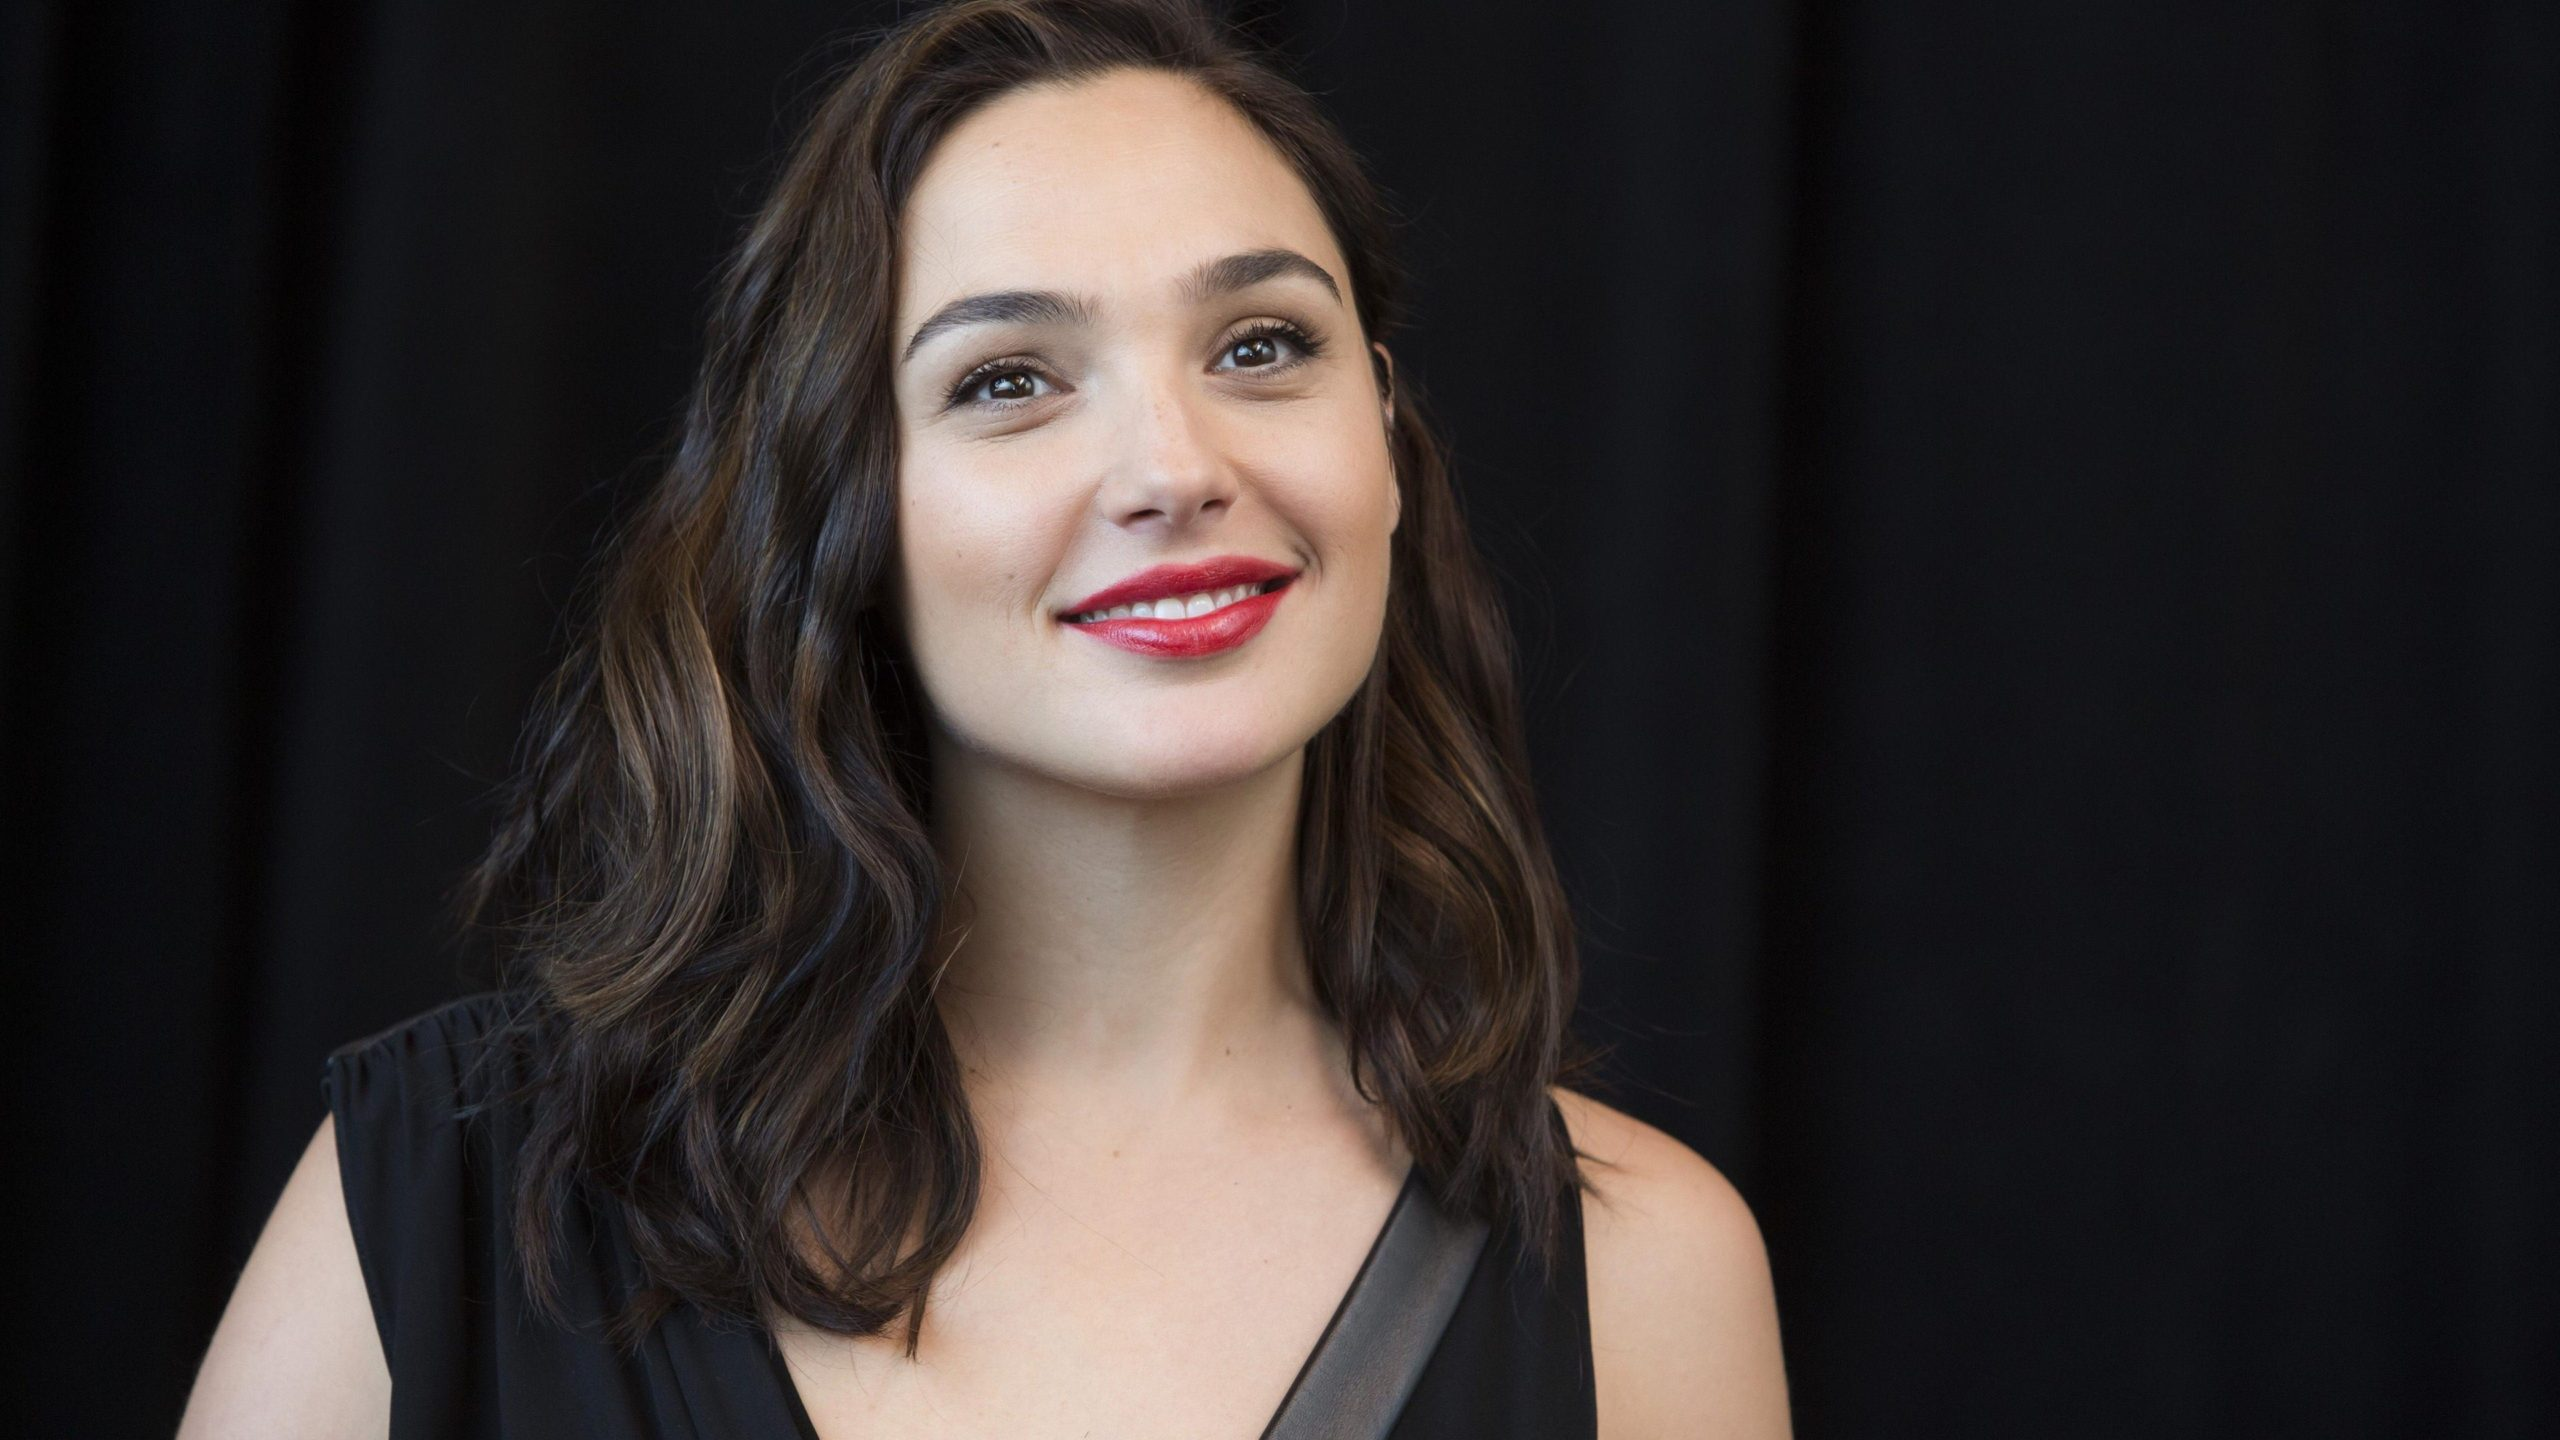 Gal Gadot Images scaled - Gal Gadot Net Worth, Pics, Wallpapers, Career and Biography